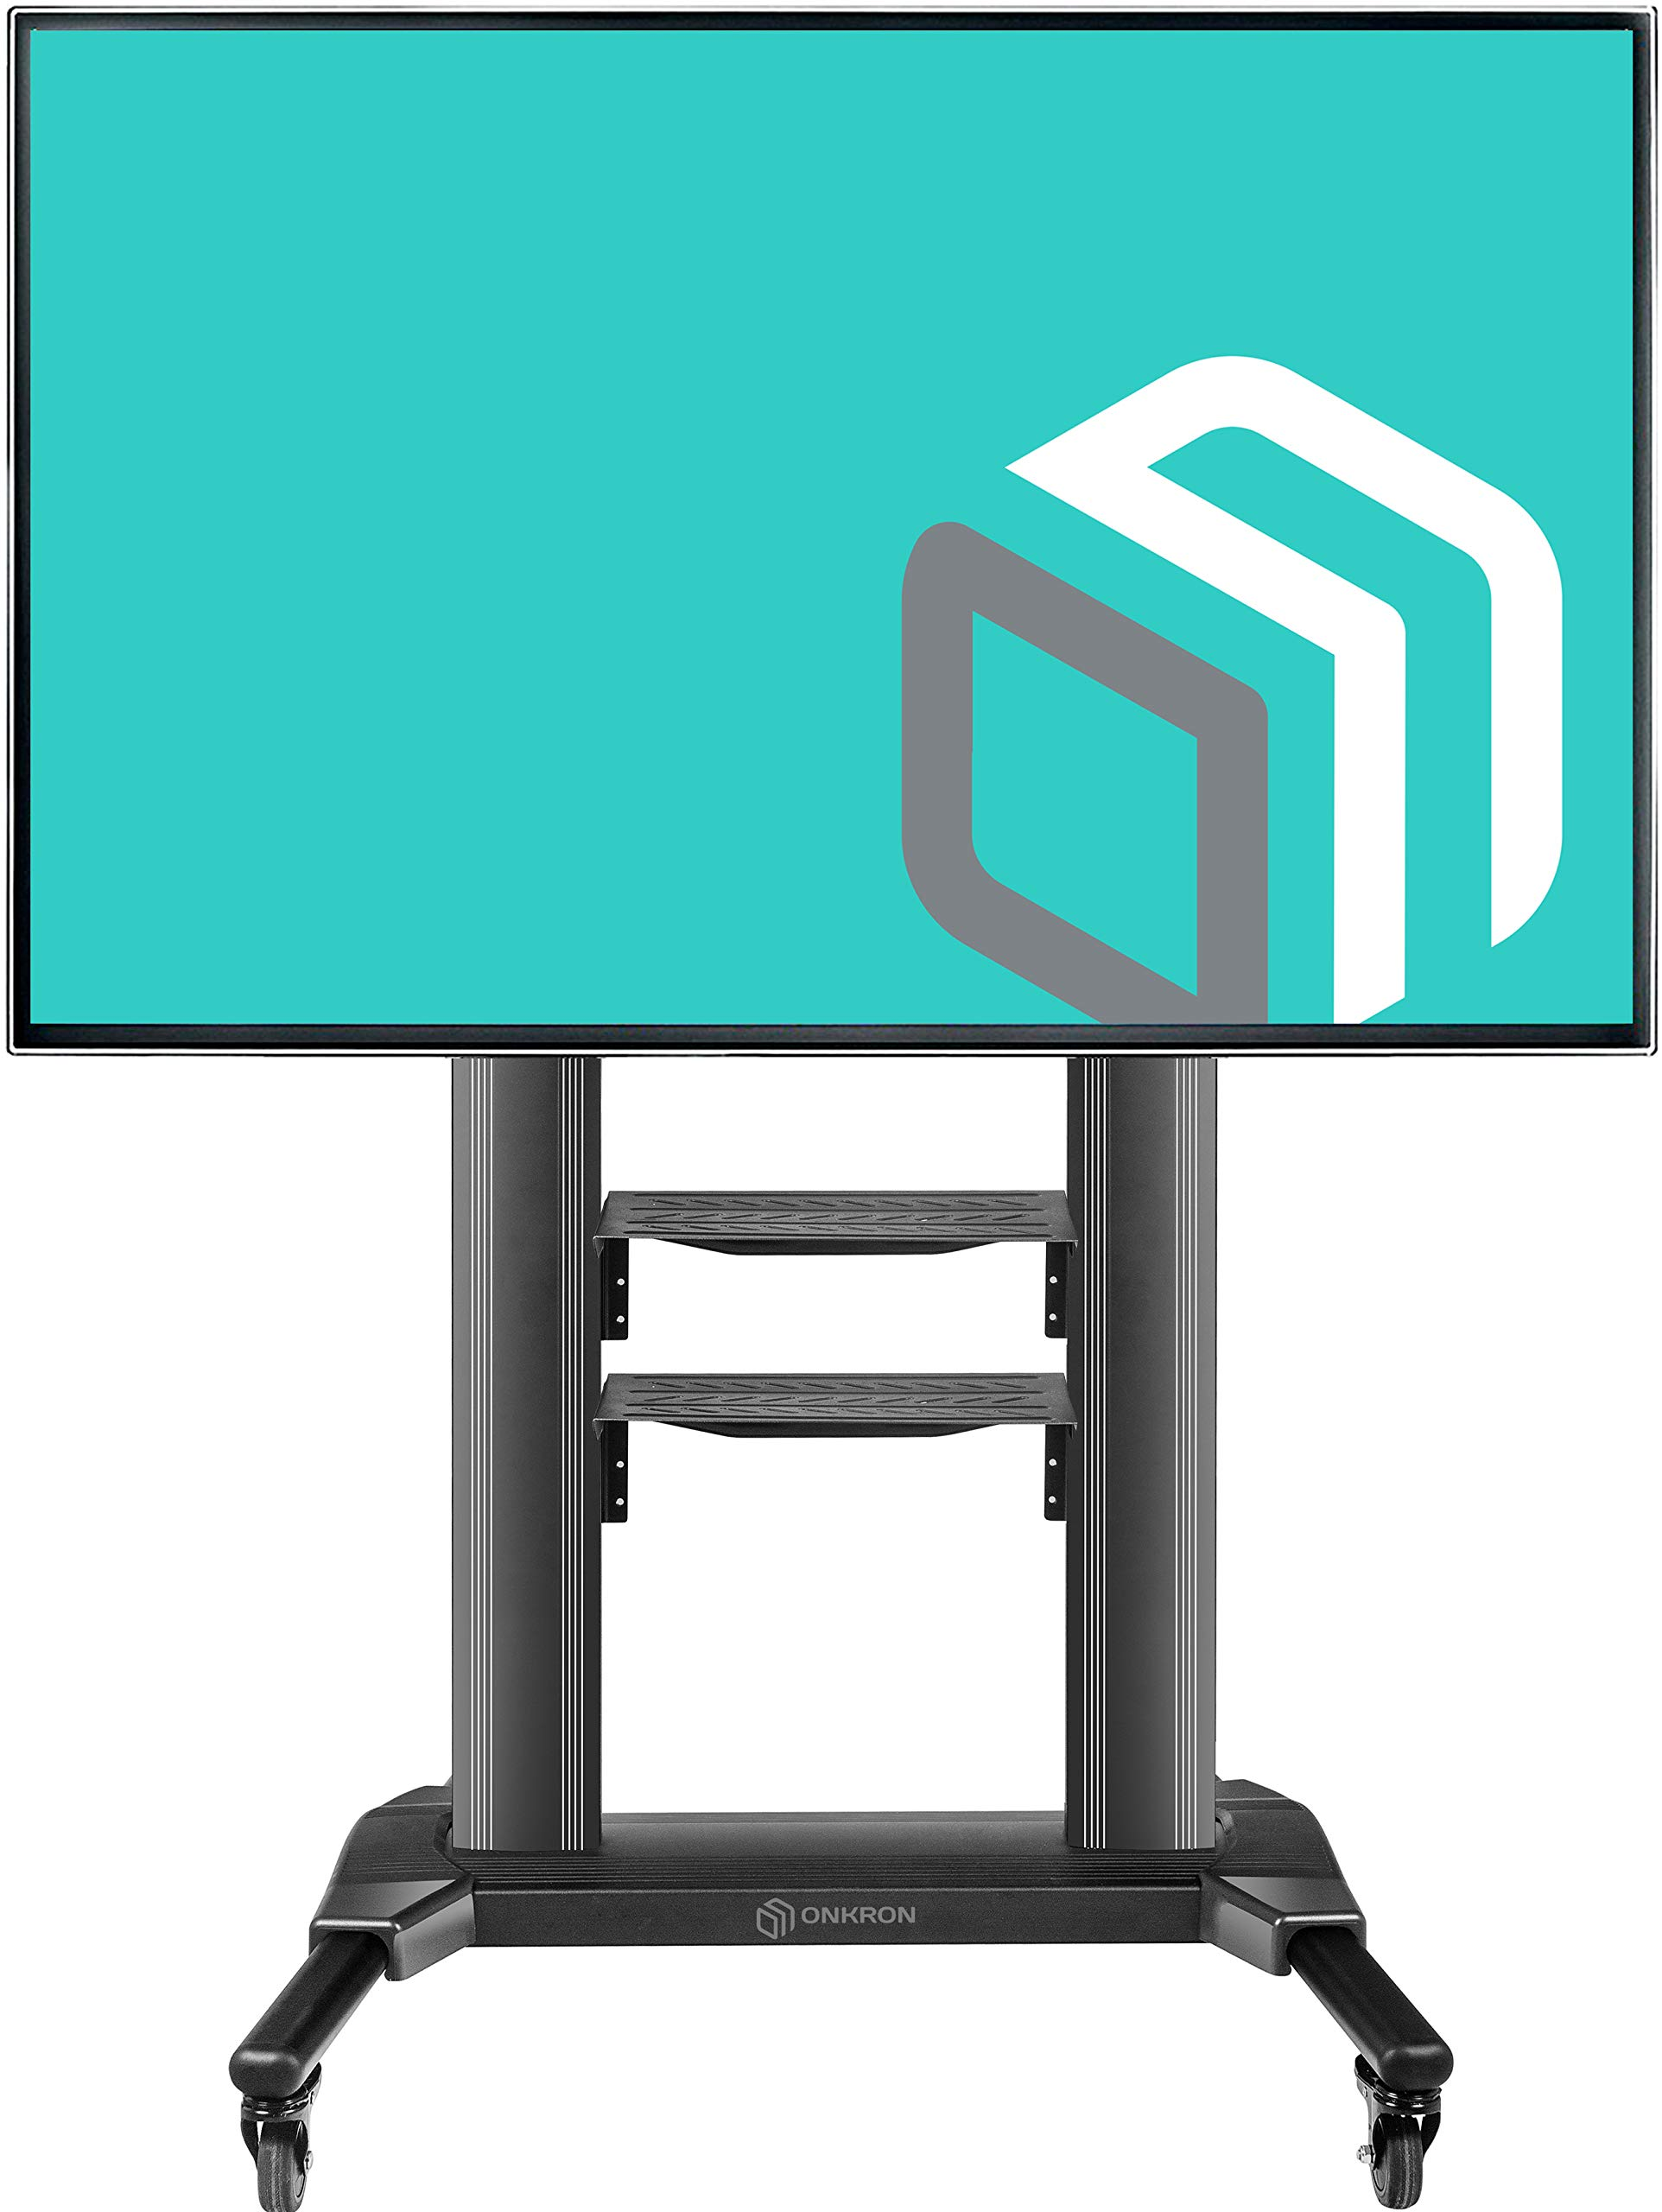 ONKRON Universal Mobile TV Stand with Shelves TV Cart on Wheels for 40'' - 75 Inch Flat Panel Curved LCD LED OLED Screens up to 100 lbs TS27-71 (Black) by ONKRON